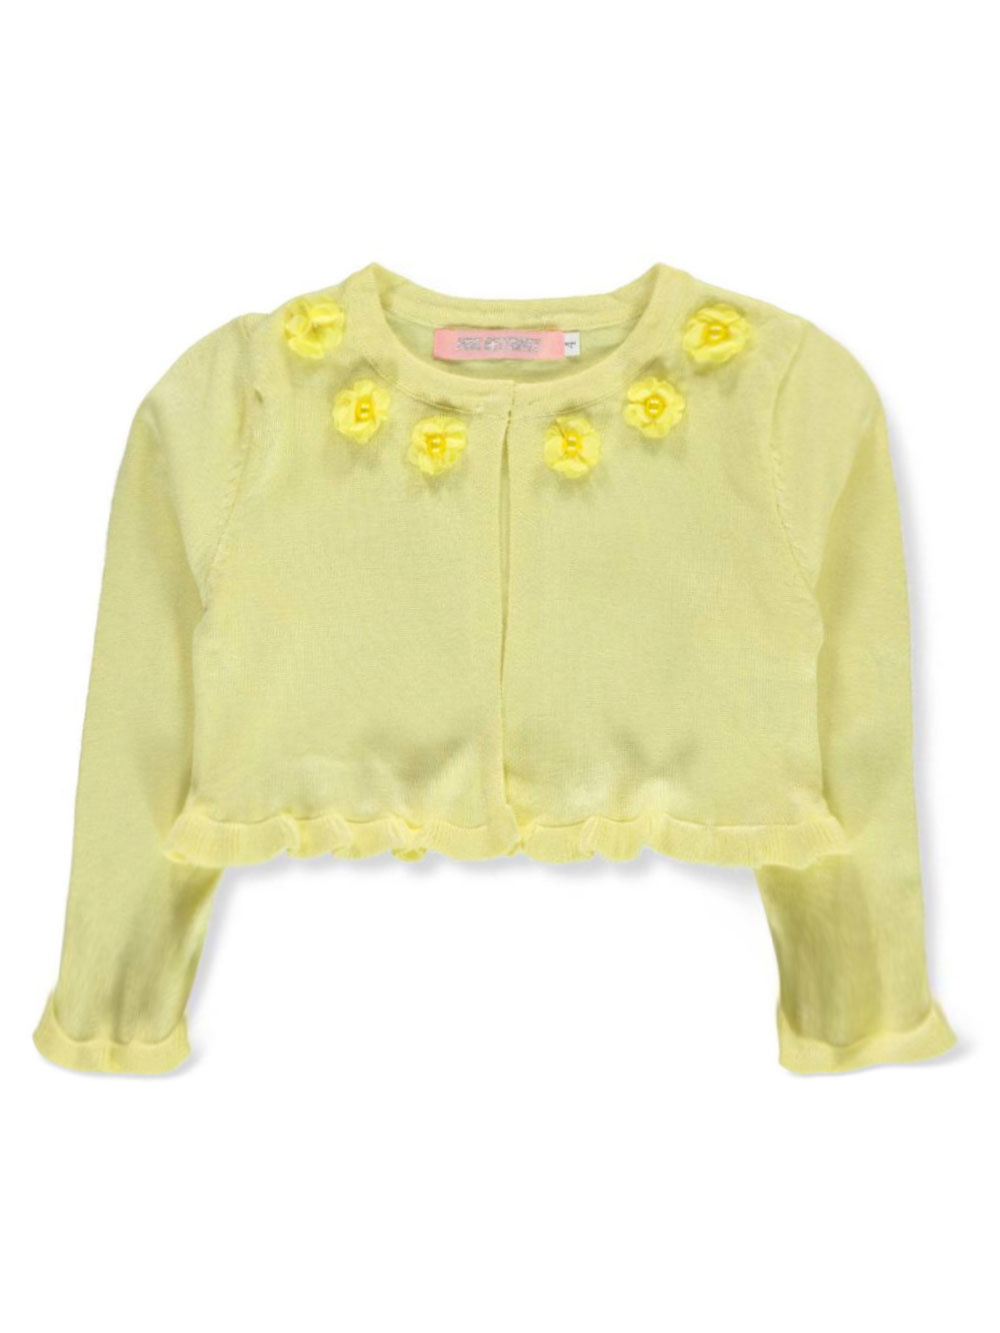 Size 14 Sweaters Shrugs for Girls